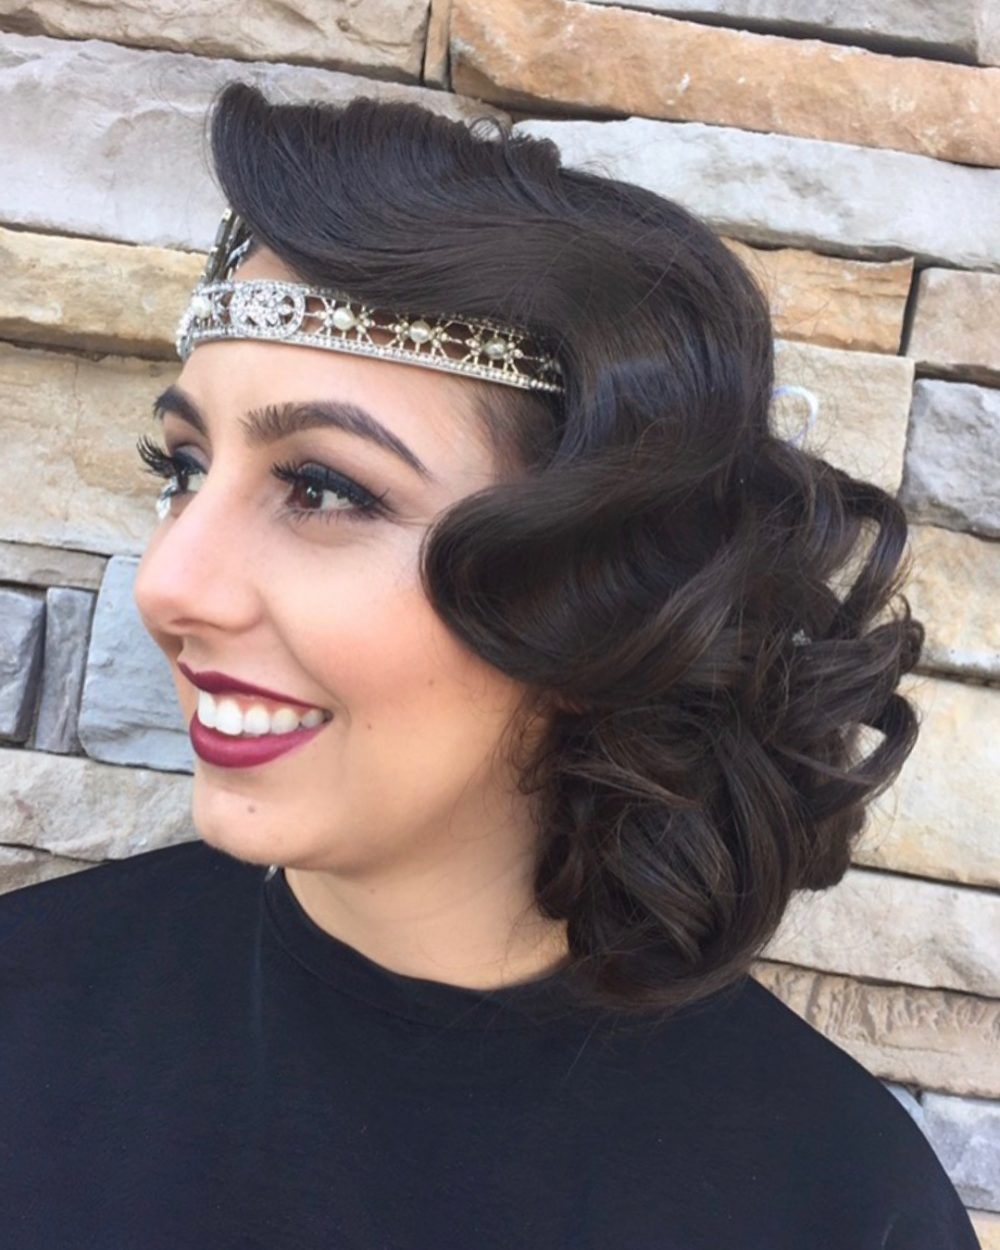 Dramatic Finger Wave hairstyle